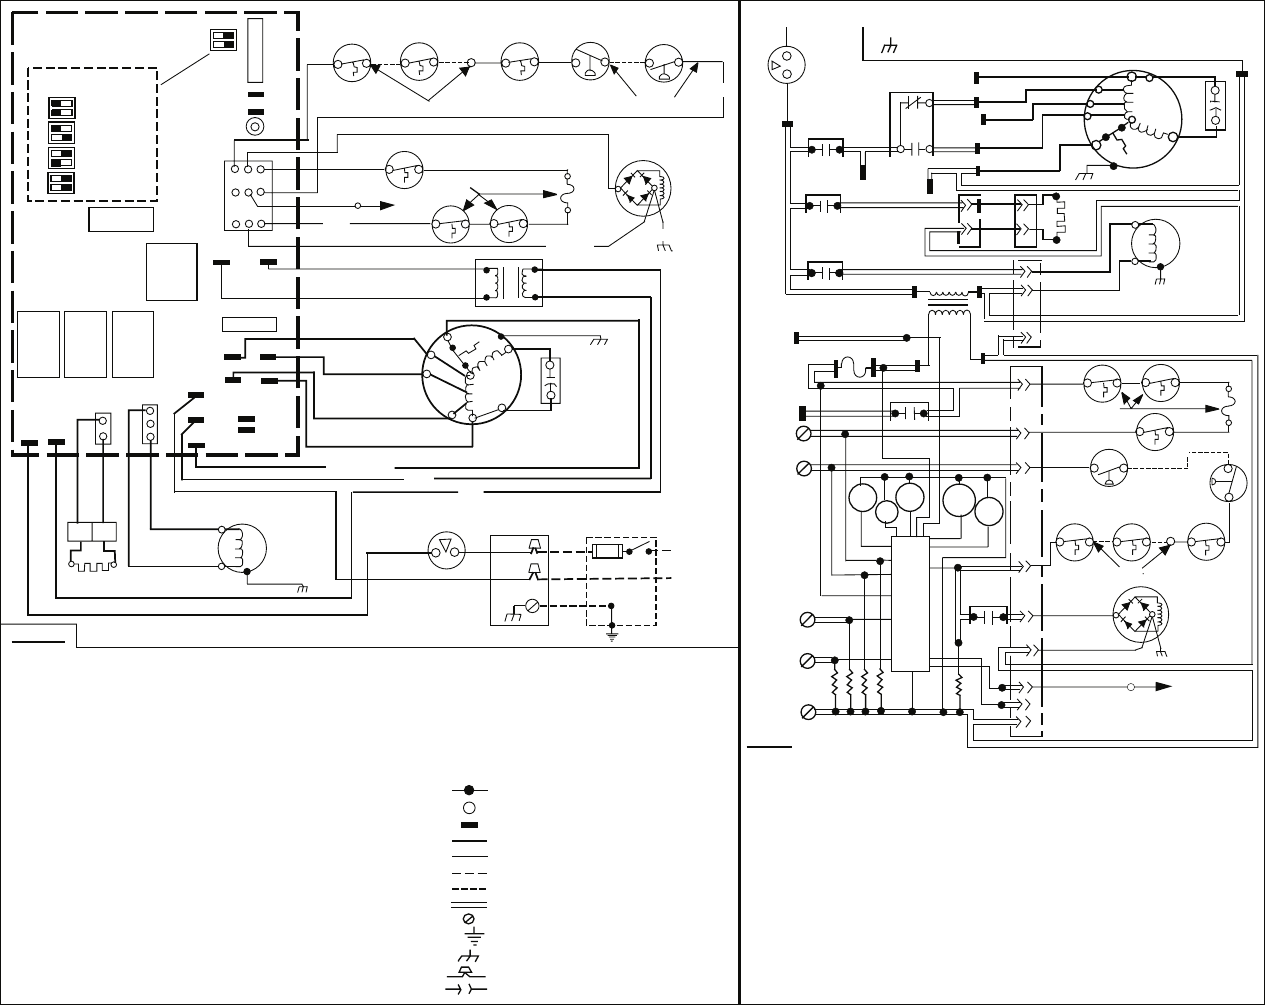 panasonic aircon wiring diagram with Maytag Furnace Wiring Diagram on Lg Split Air Conditioner Service Manual Pdf Wiring Diagrams also Air Conditioner Parts together with Mitsubishi Ductless Faq as well Panasonic Inverter Air Conditioner E Ion in addition Mini Split Air Conditioner Installation Diagram.